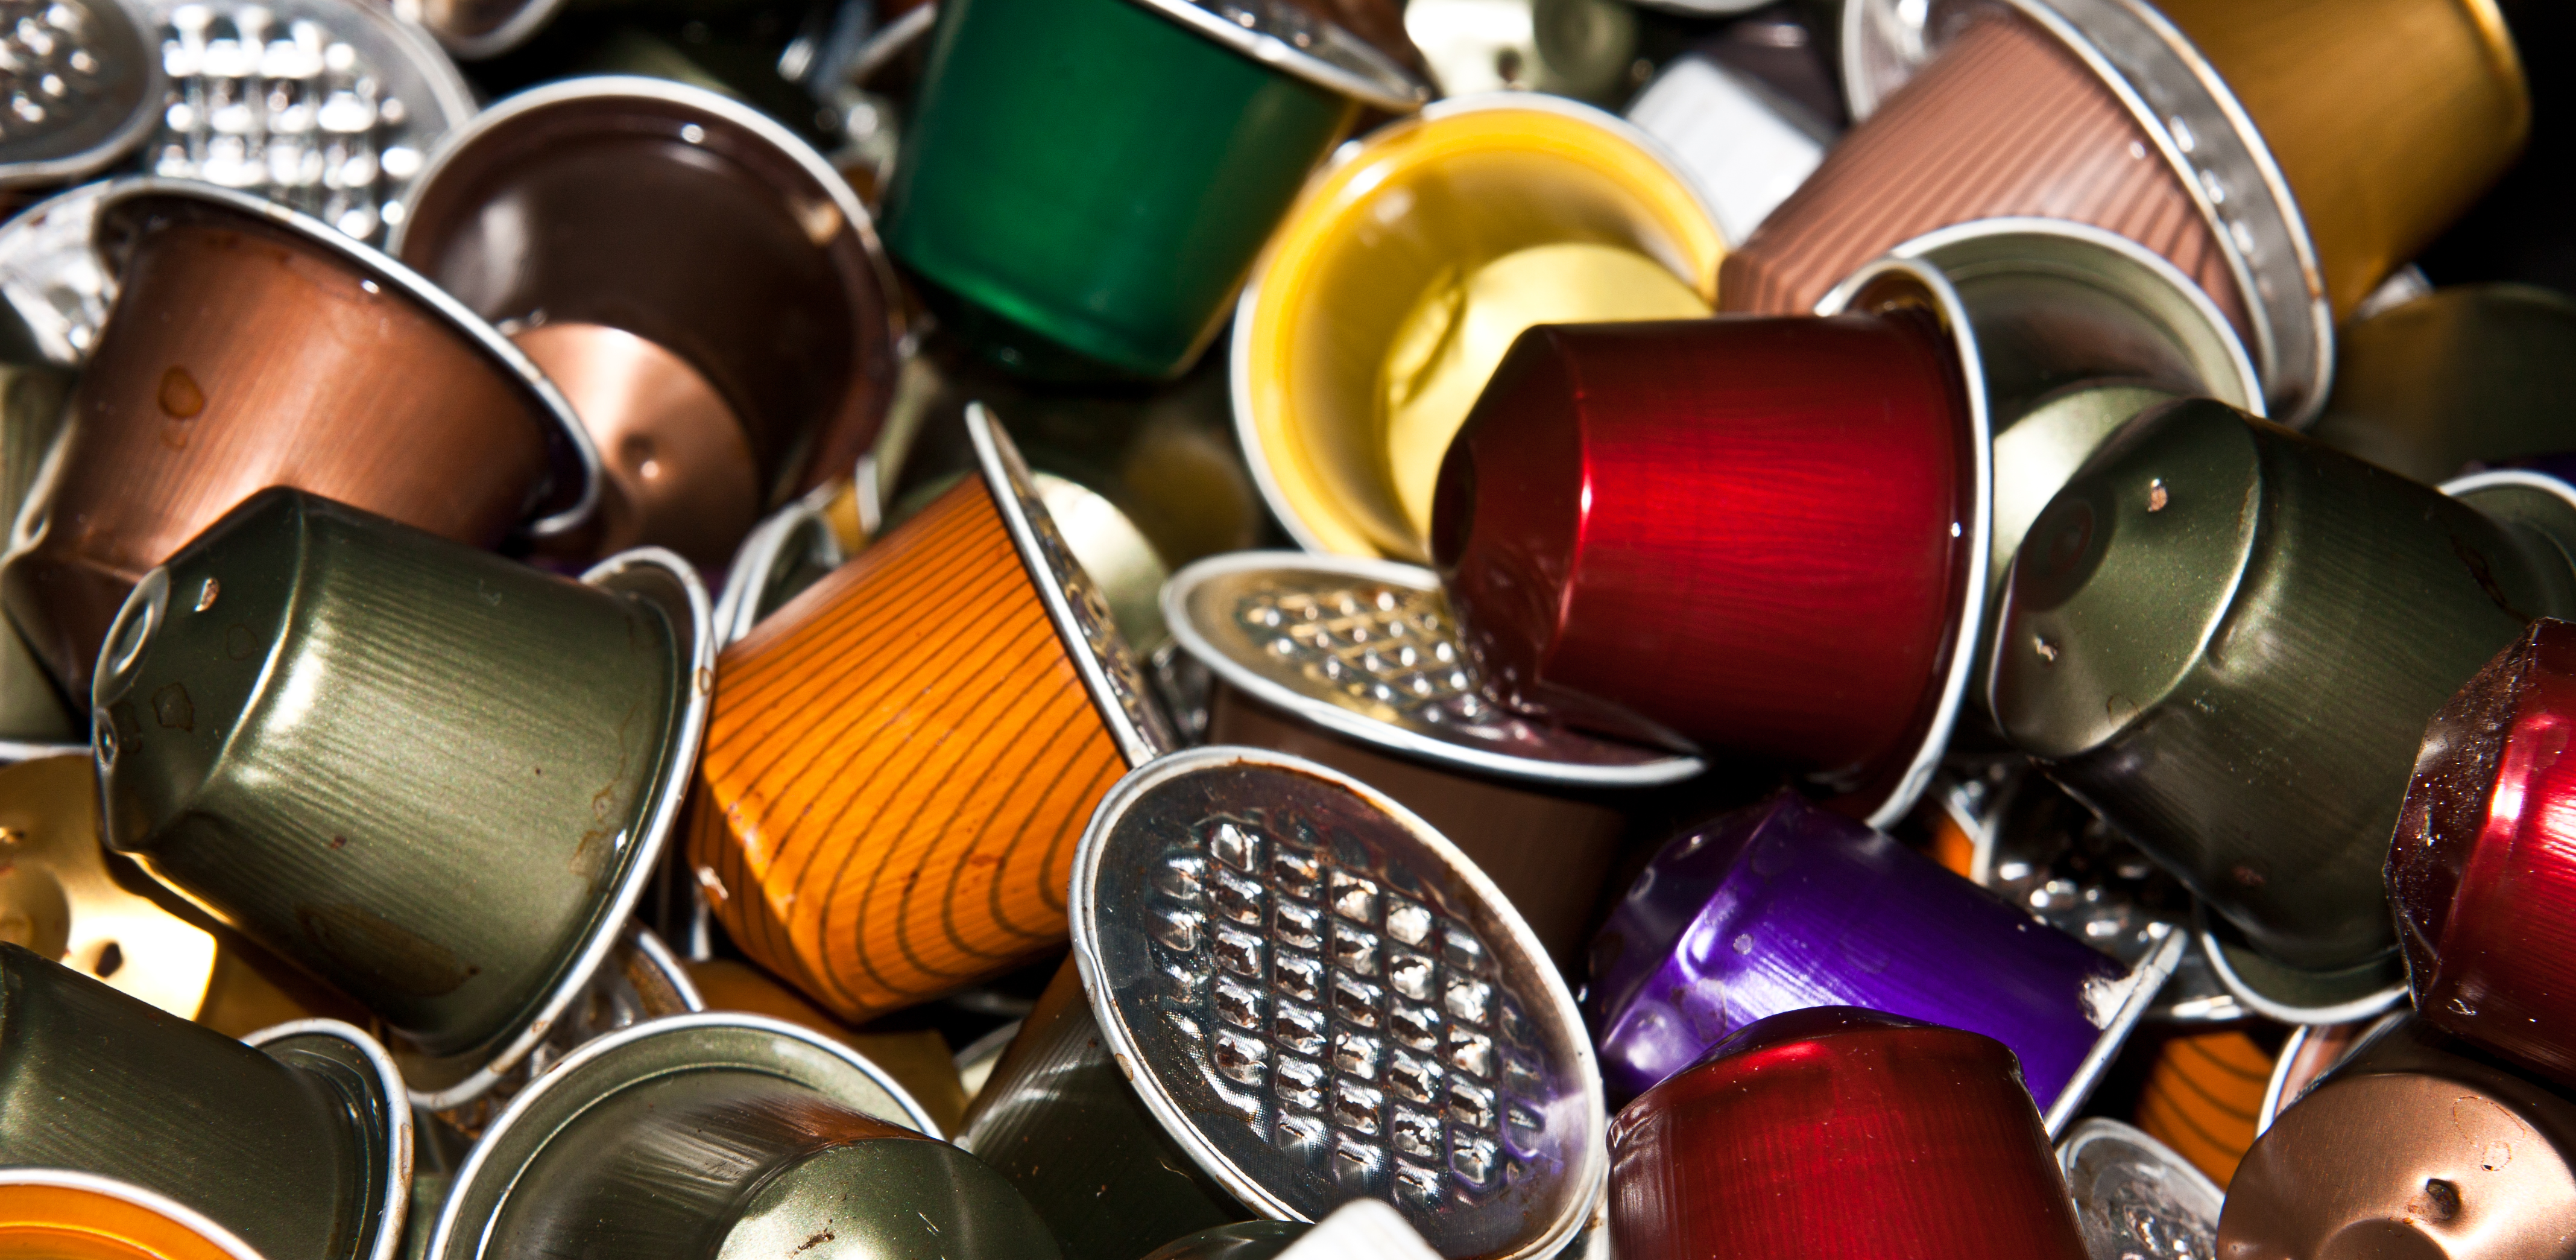 Recycling your coffee pods?